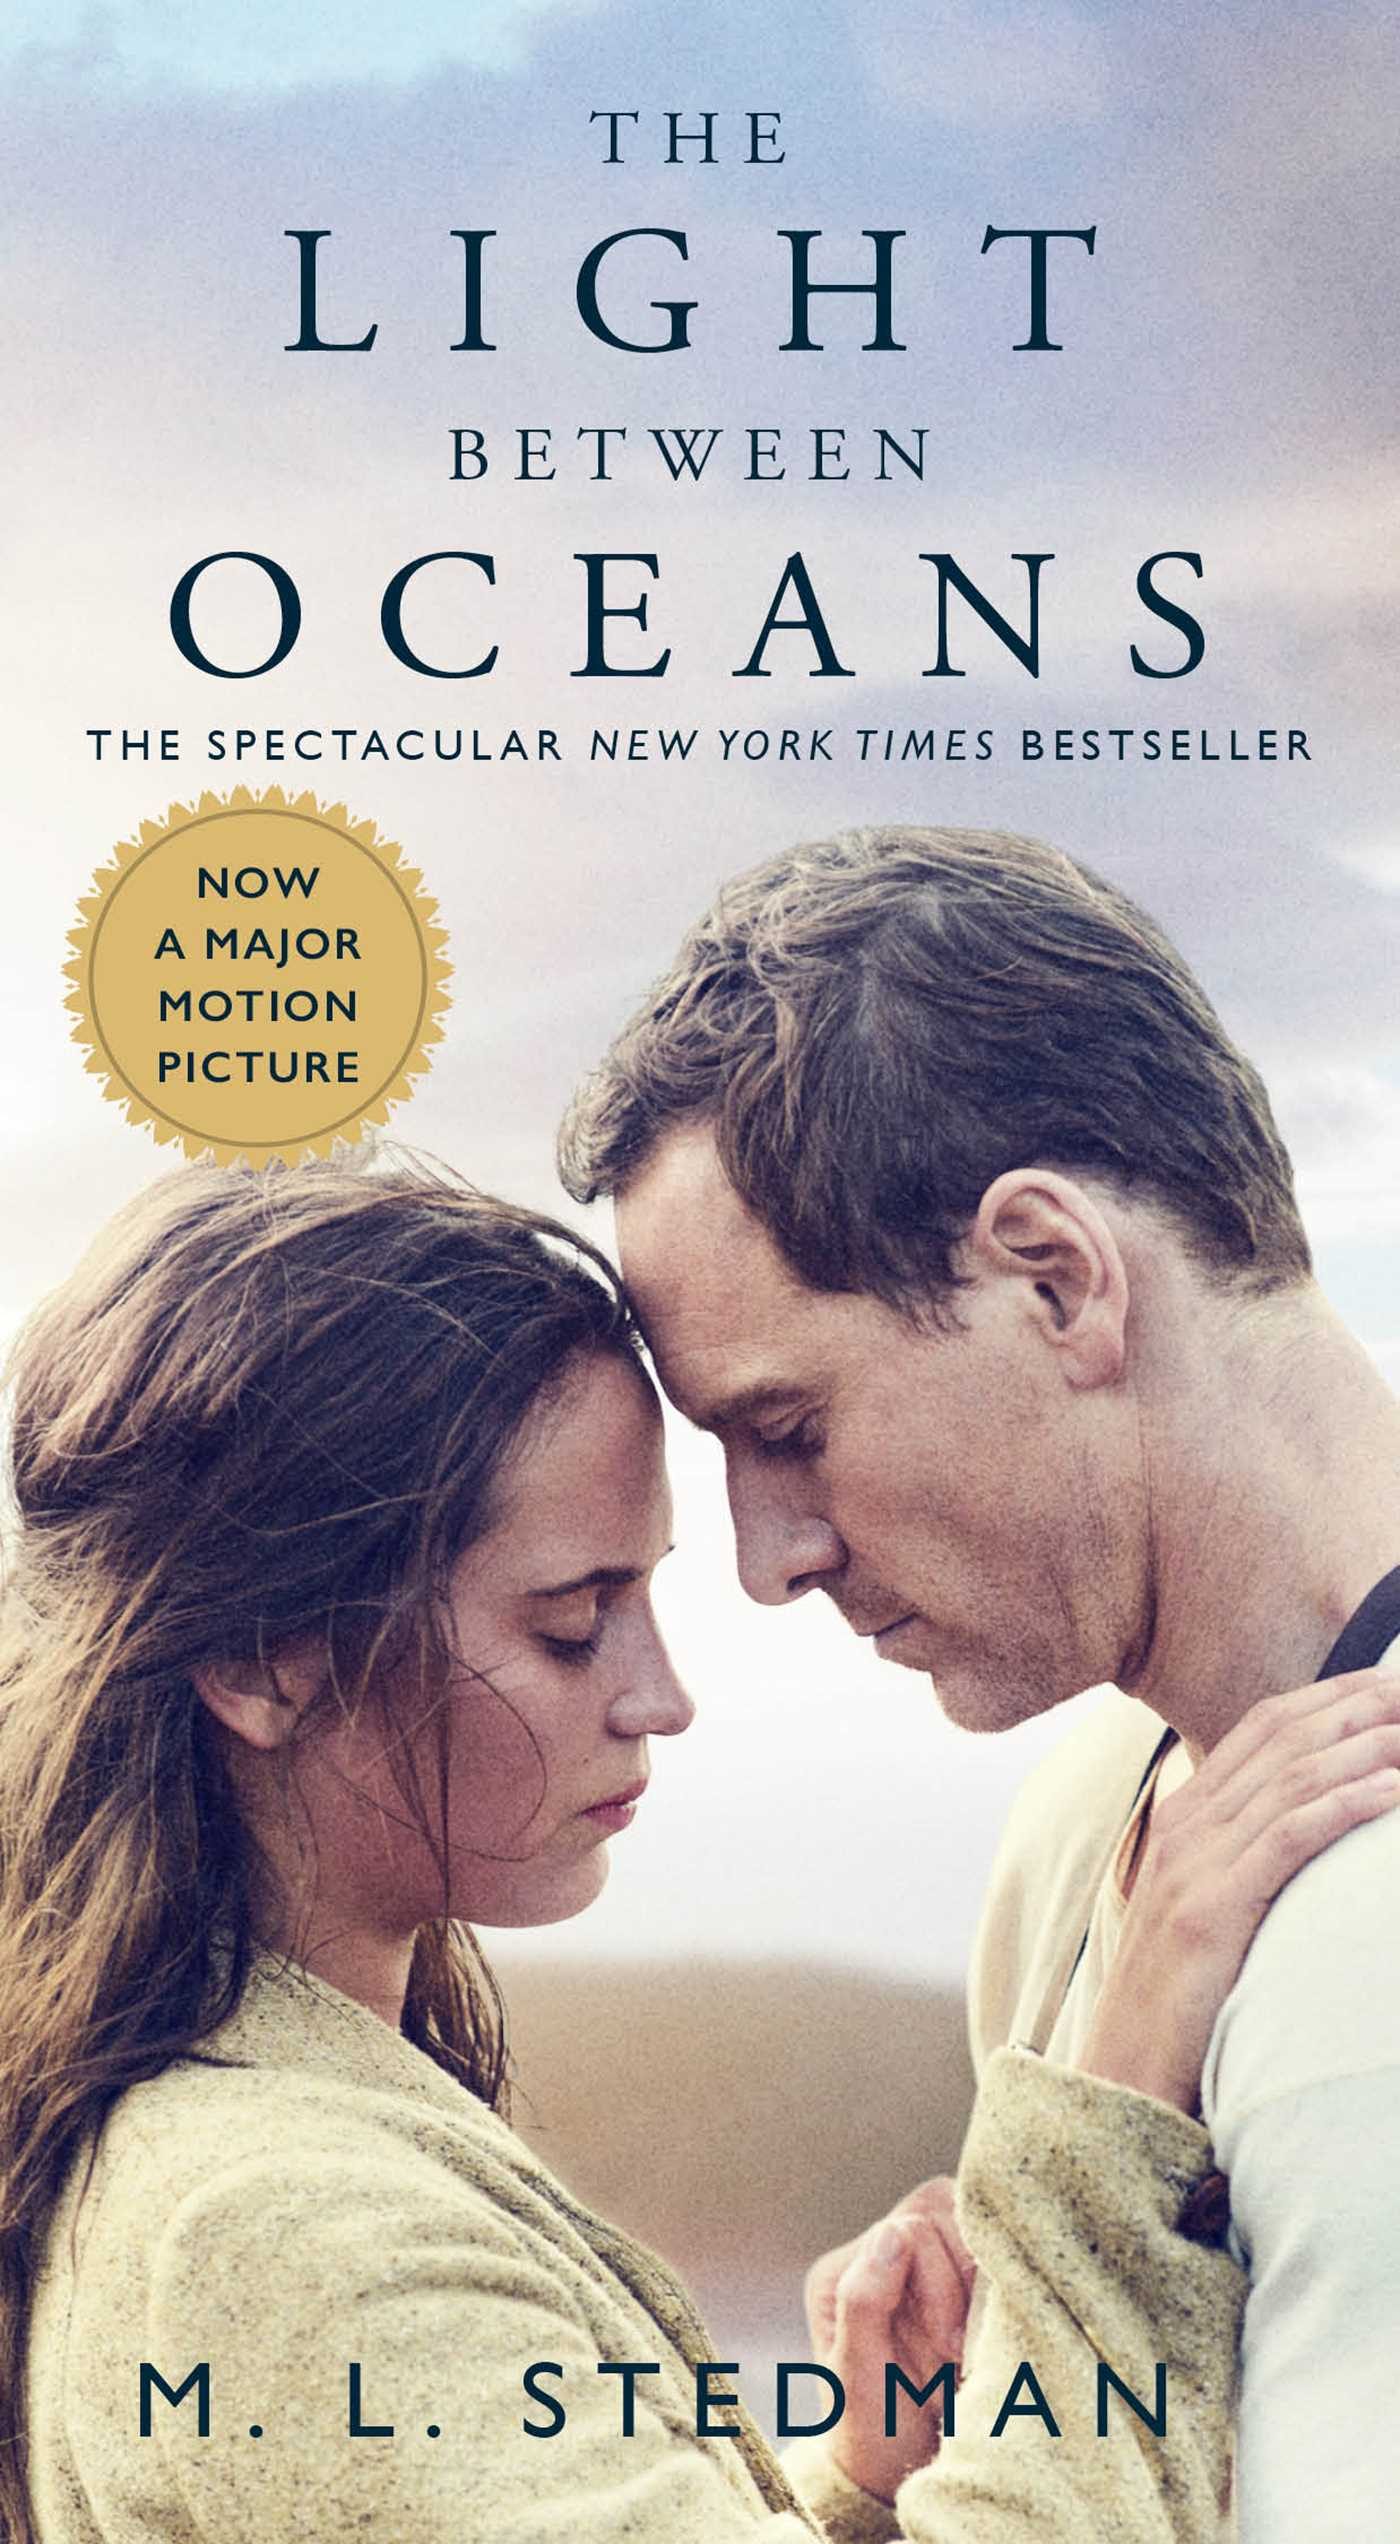 The light between oceans 9781501127977 hr